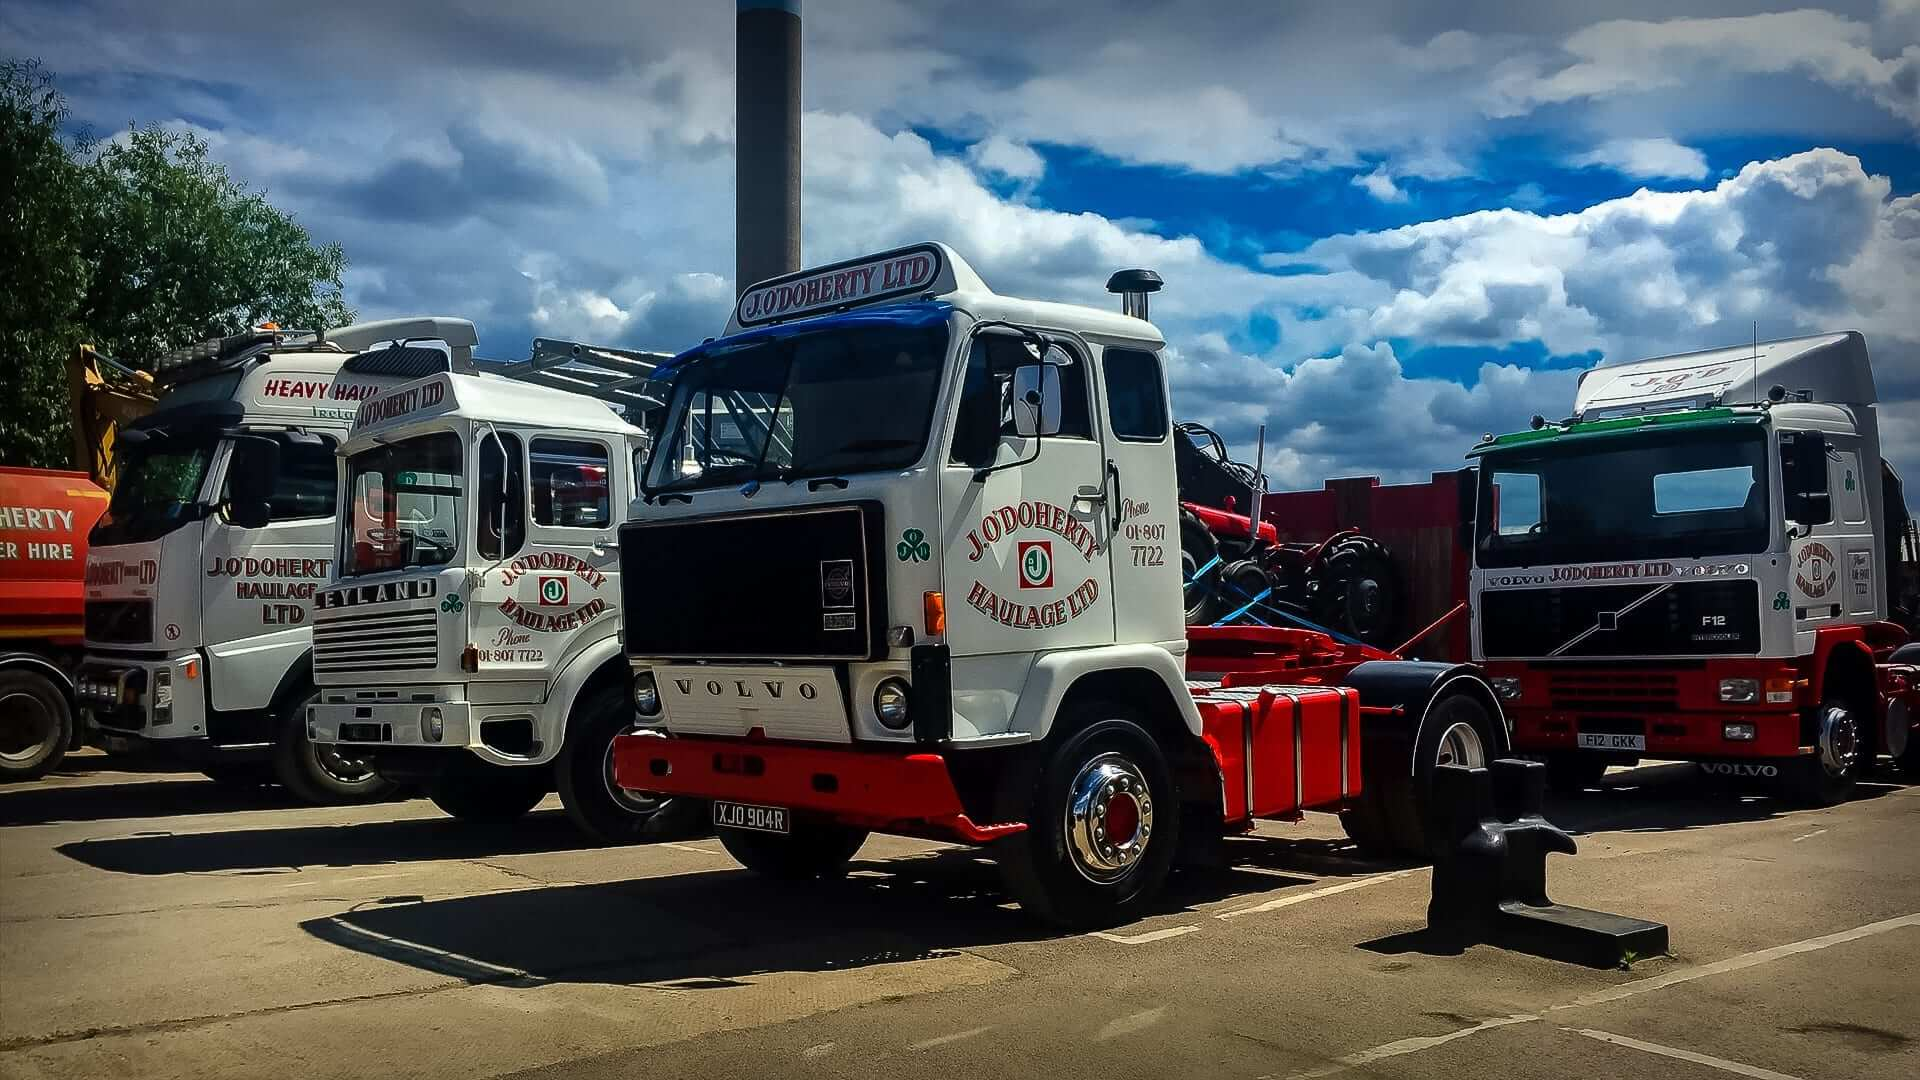 Our History | JOD Group | J.O'Doherty Haulage Ltd